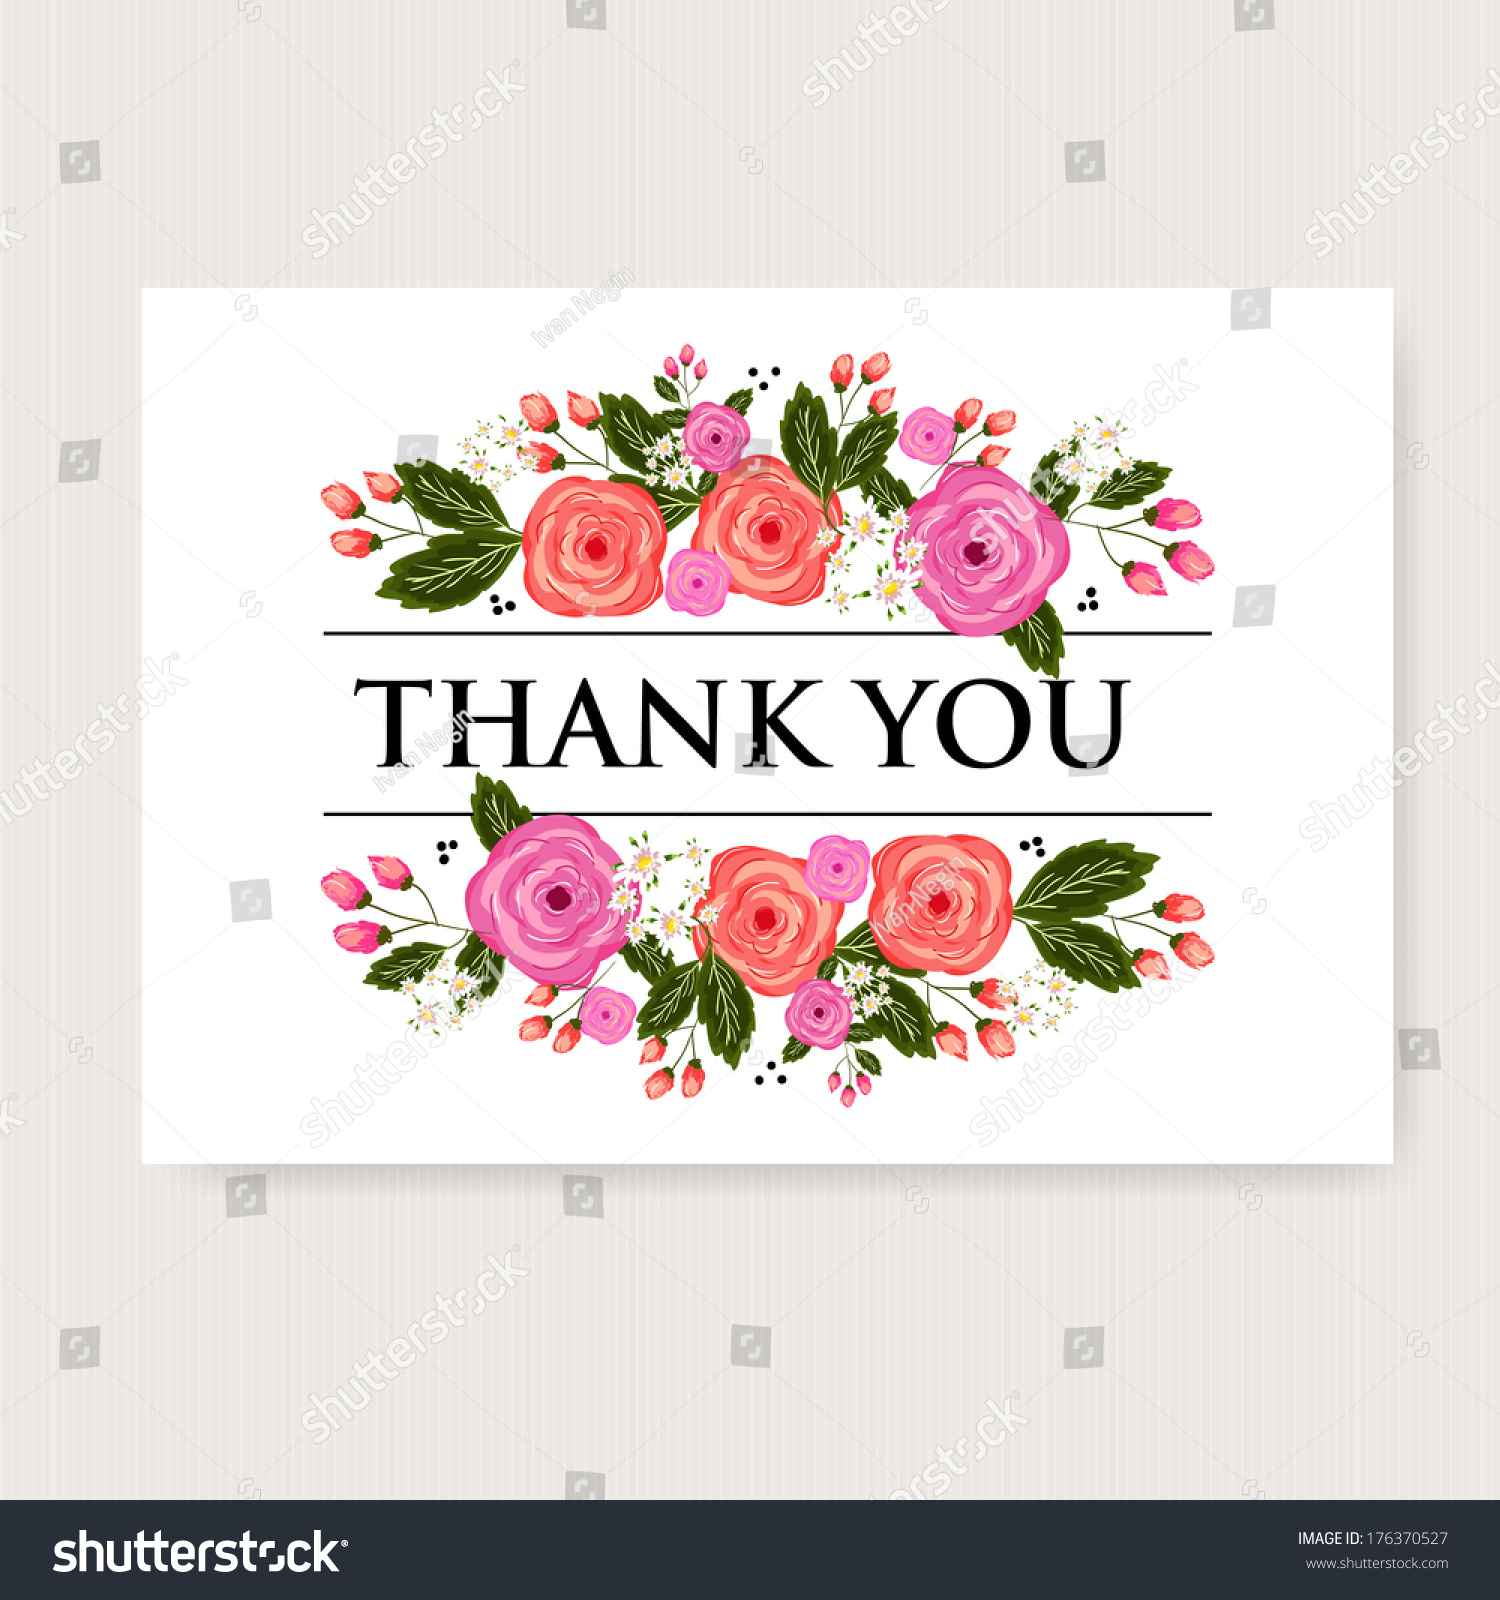 Beautiful Flower Thank You: Floral Thank You Card Beautiful Realistic Stock Vector